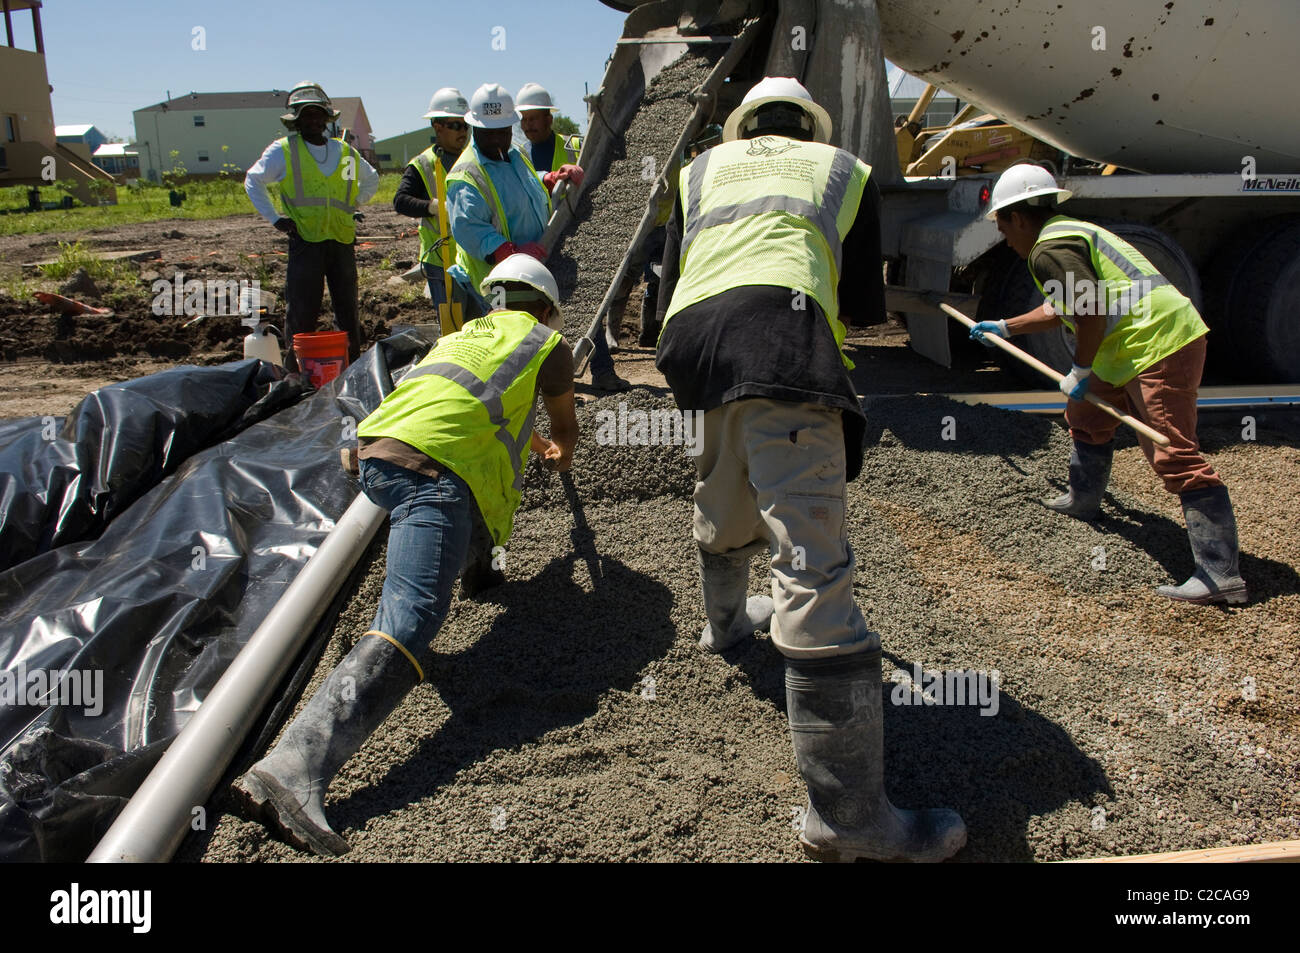 First pervious concrete pour in a public street in New Orleans, 9th Ward 2011 - Stock Image